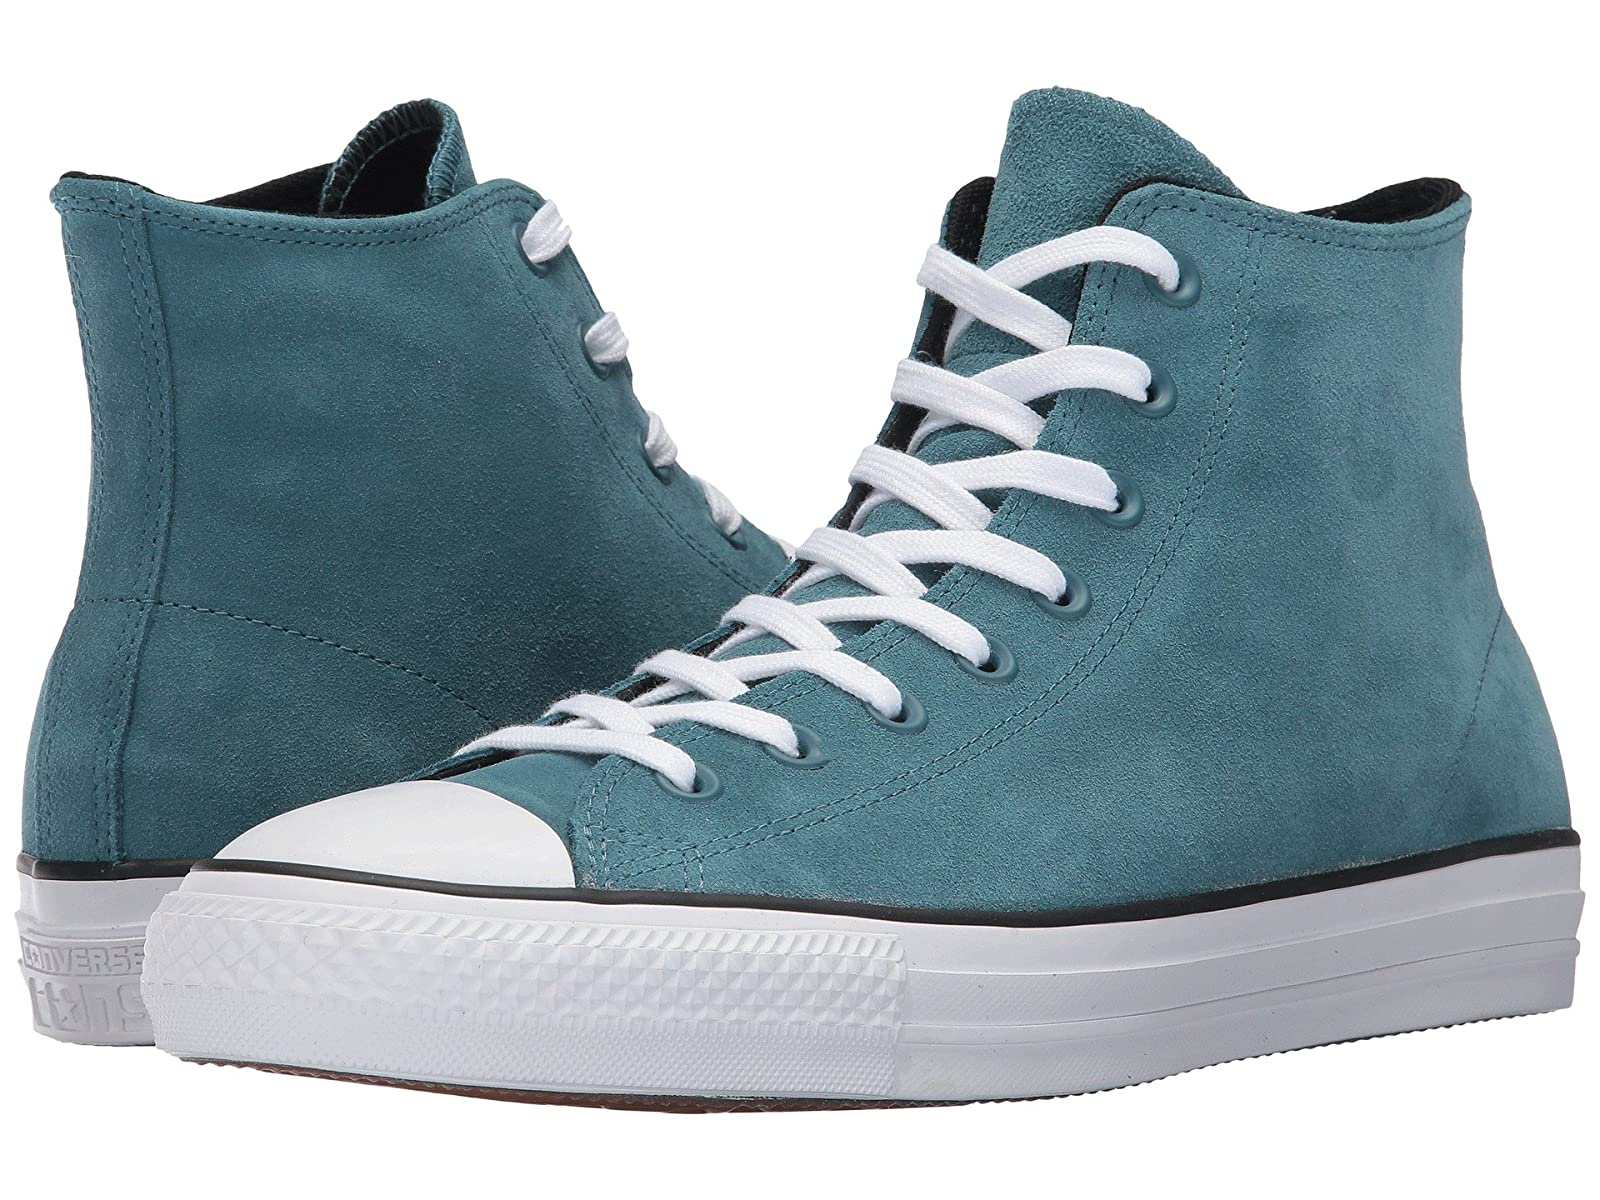 Converse Skate CTAS Pro Hi SkateCheap and distinctive eye-catching shoes